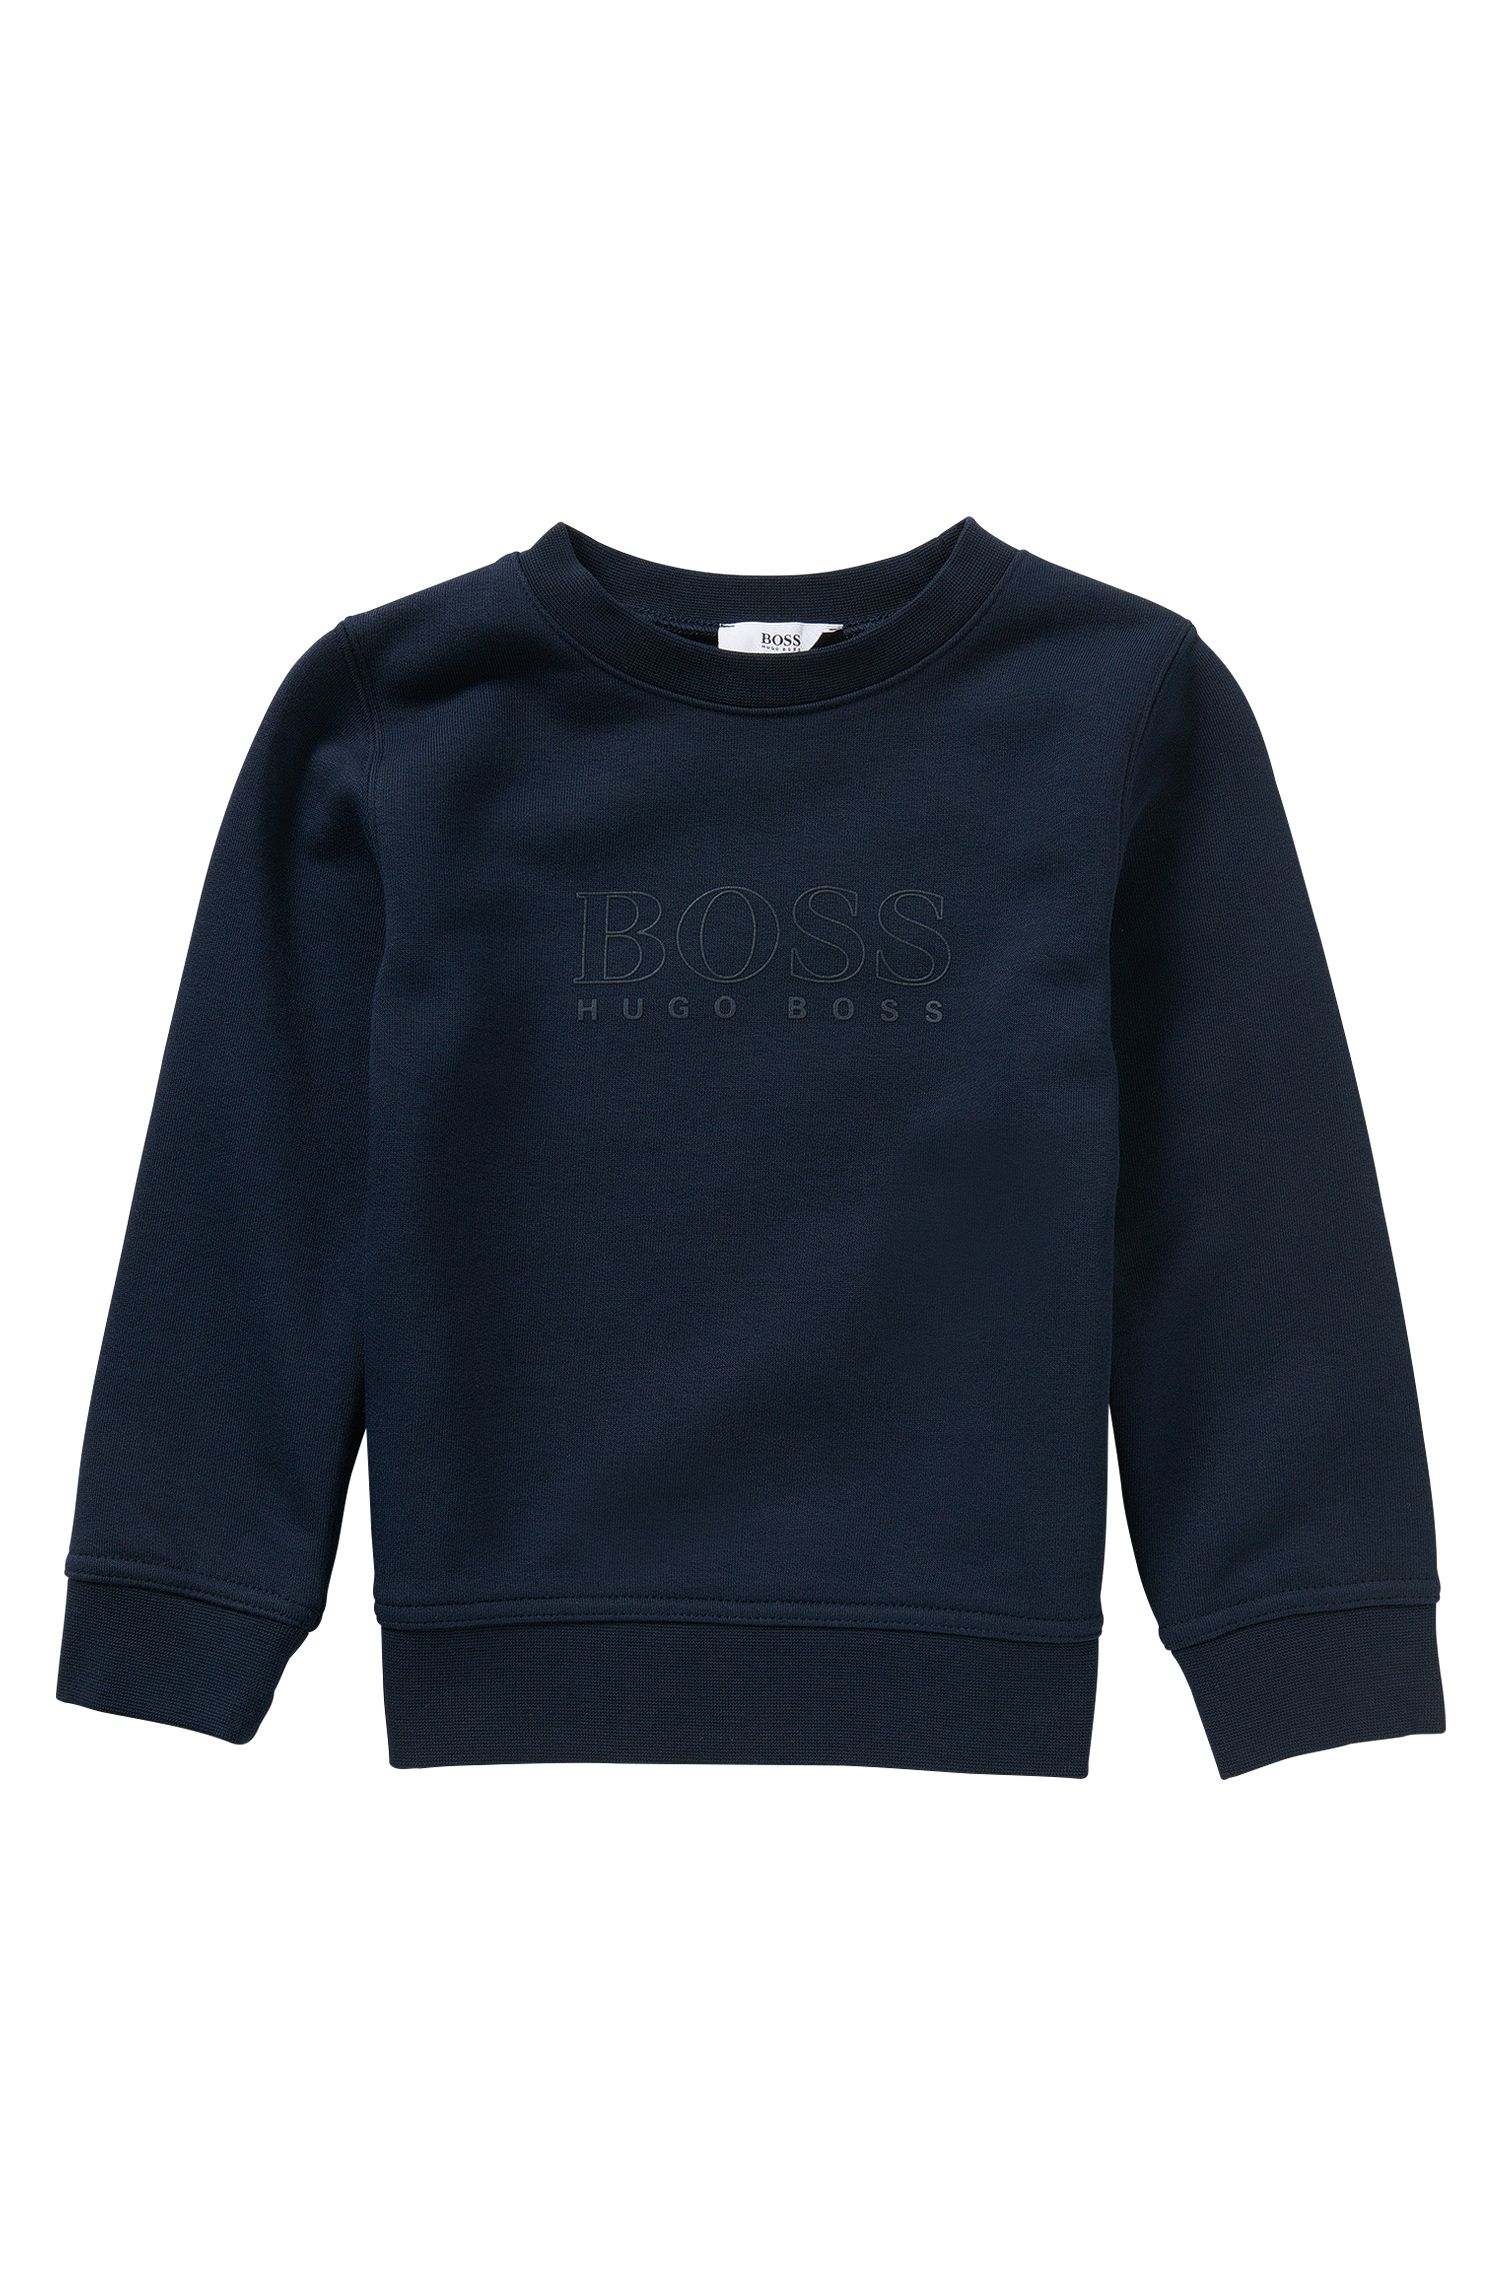 Kids' cotton blend sweatshirt with rubberised logo print: 'J25971'